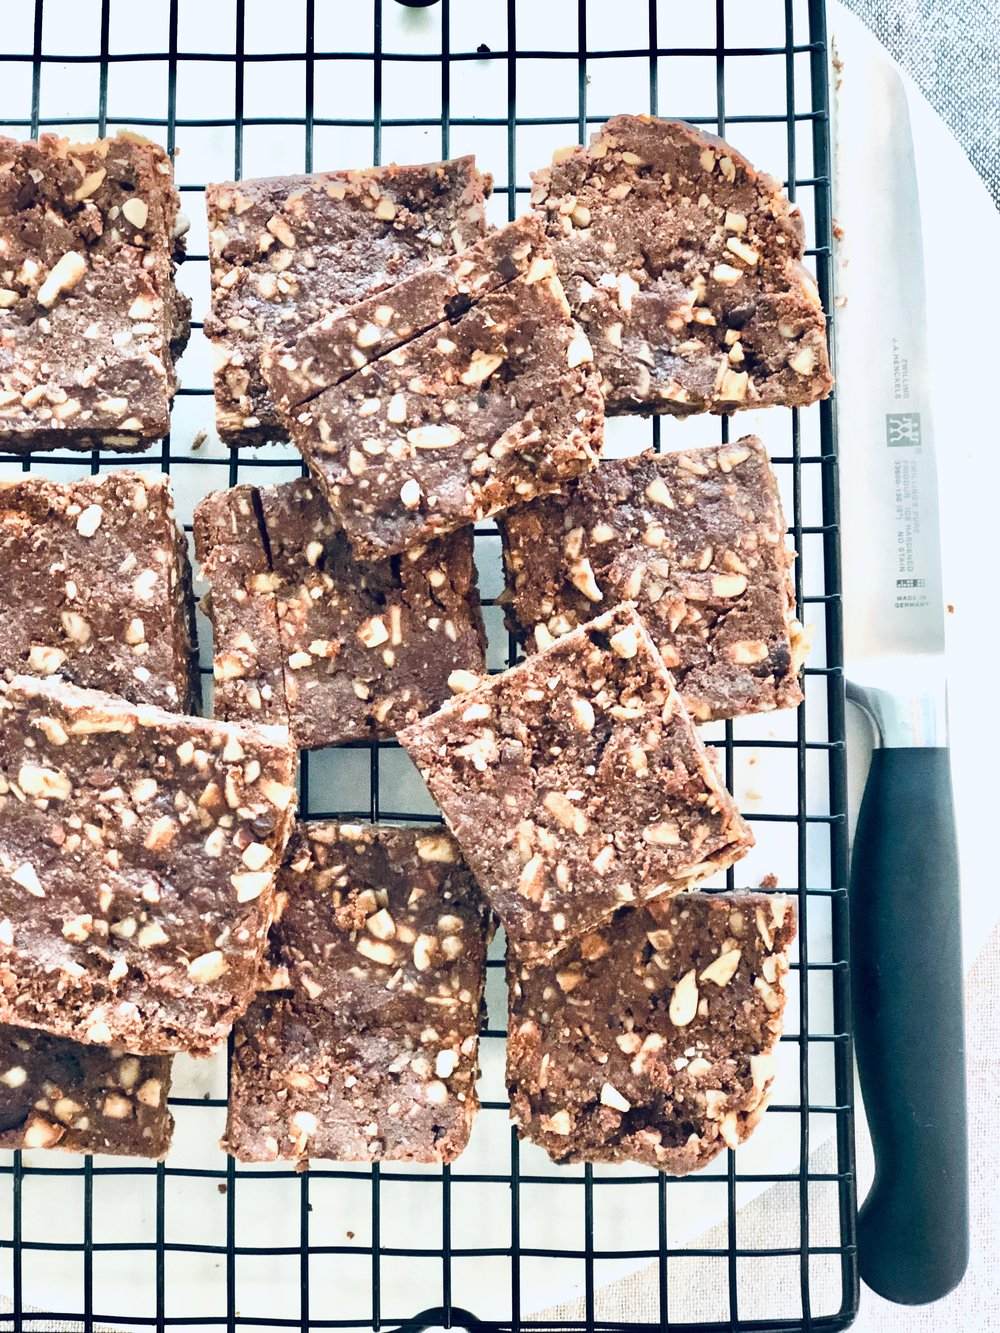 - Ingredients½ cup each sunflower, shredded coconut, Pepitas,¼ cup chia, vanilla protein powder , hemp seeds, goji berries 2 tbs Coconut oil½ tsp each cinnamon and vanilla Pinch quality saltMethodPan fry these ingredients in coconut oil, for 2 minutes until lightly crunchy. Melt ingredients below on low heat until chocolate melted. Mix dry ingredients through wet and pour into pan lined with baking paper. Put in fridge to set for an hour and then slice and try not to each all at once!1 block 90% dark choc¼ cup tahini½ tsp liquid stevia or sweetener of choice